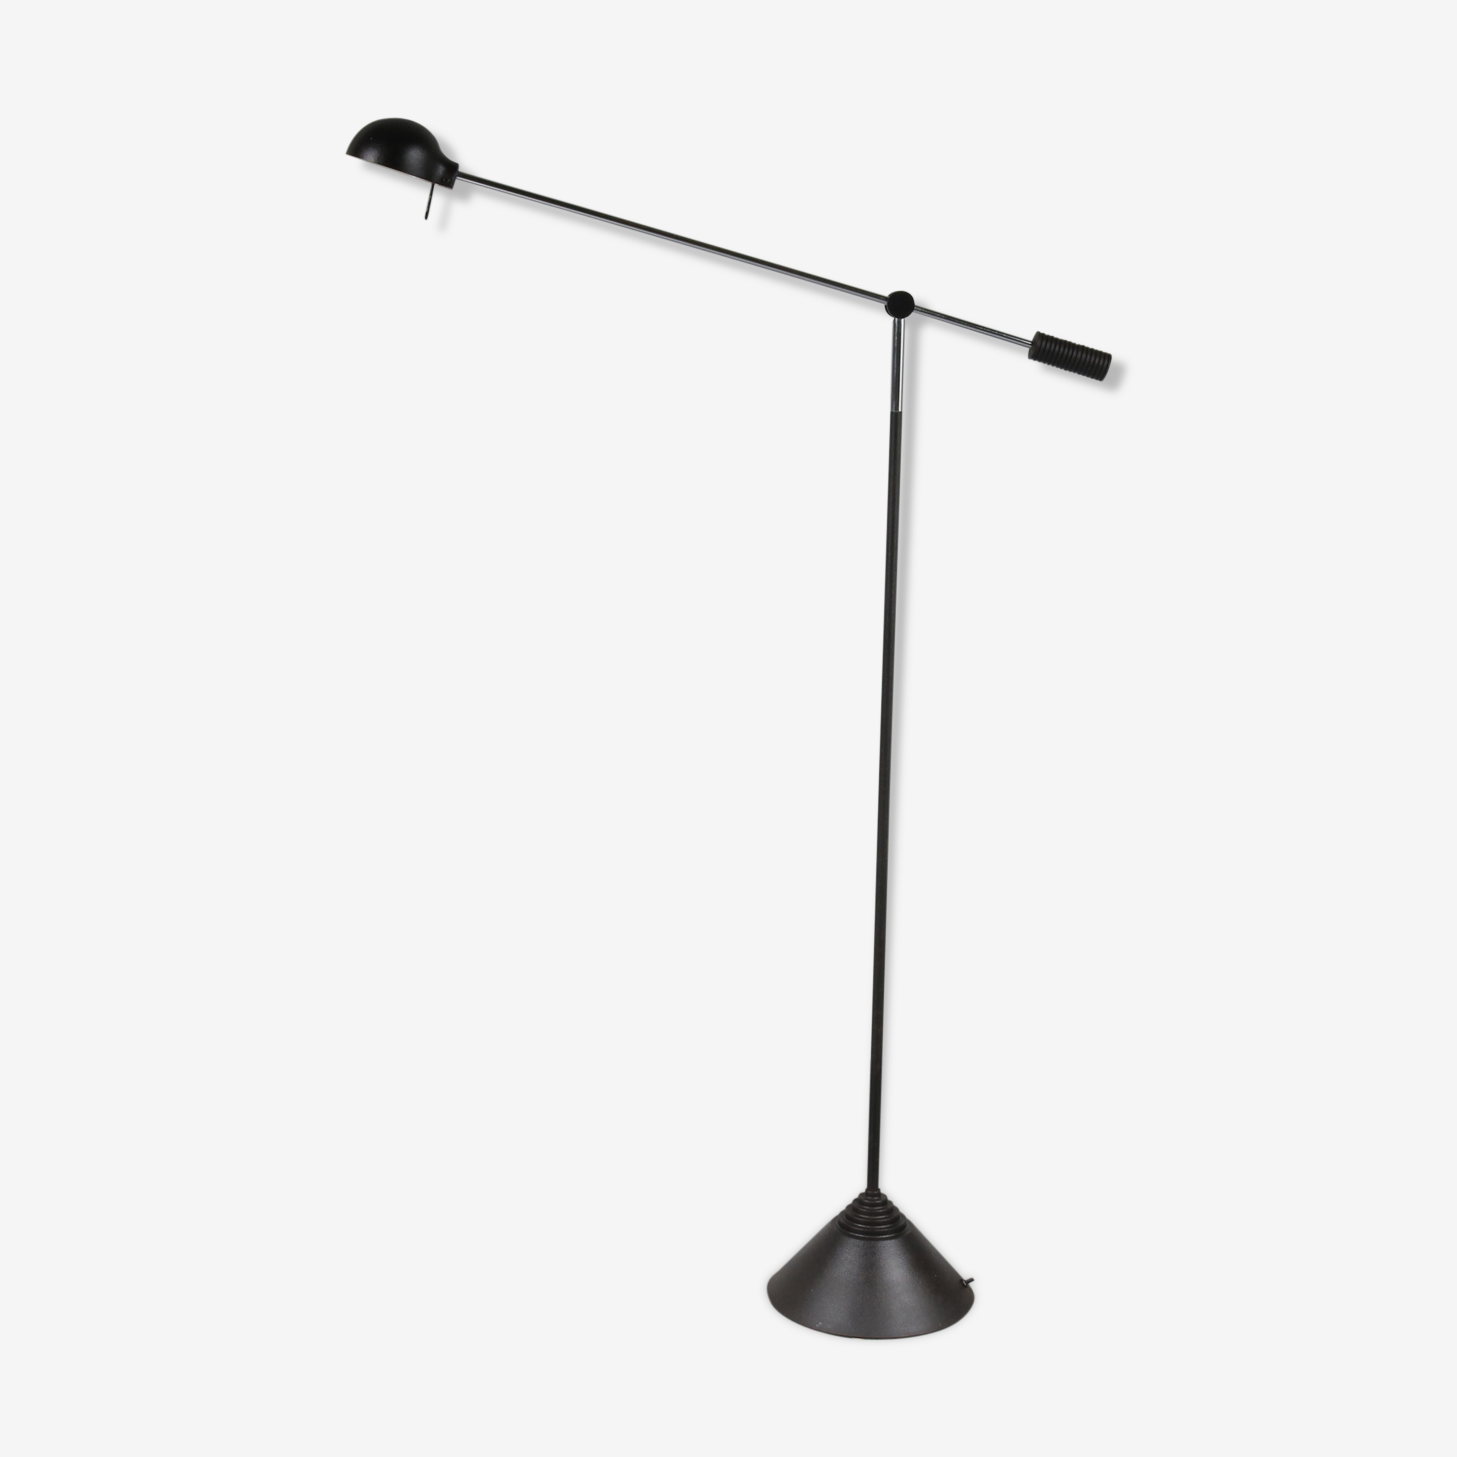 1970s Counter balance floor lamp  manufactured by Luci in Italy